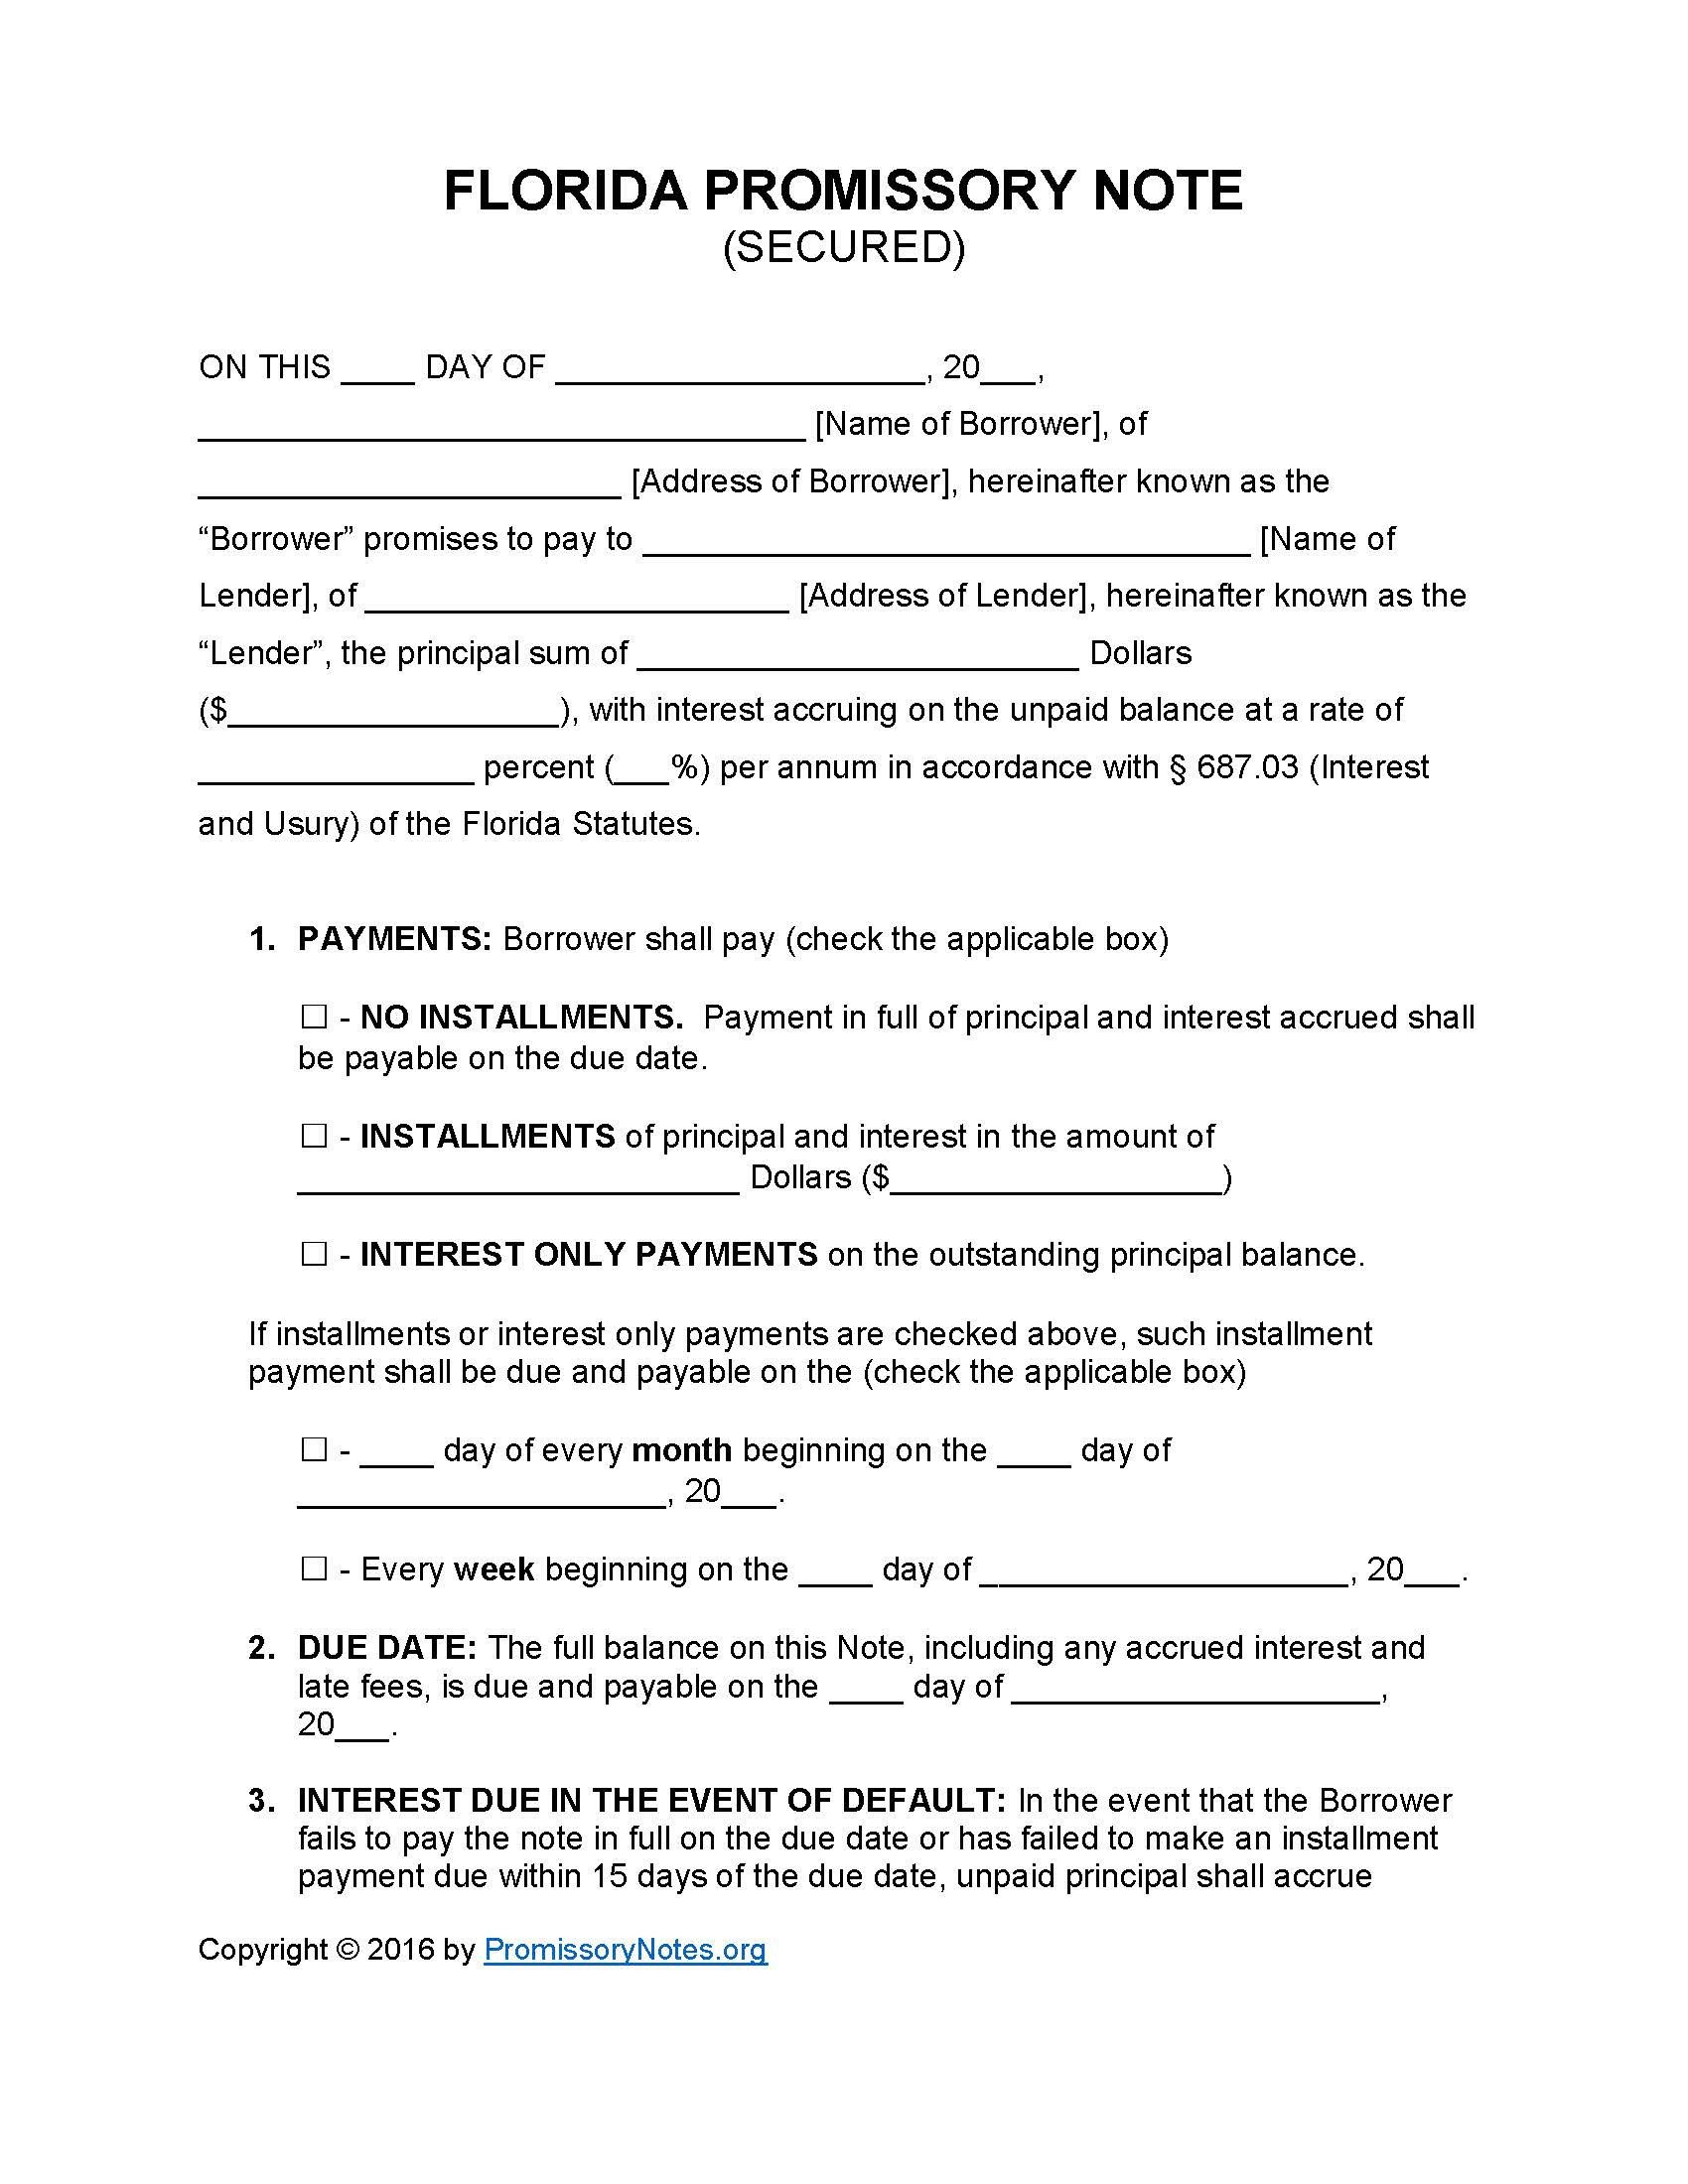 Secured Promissory Note Template Florida Secured Promissory Note Template Promissory